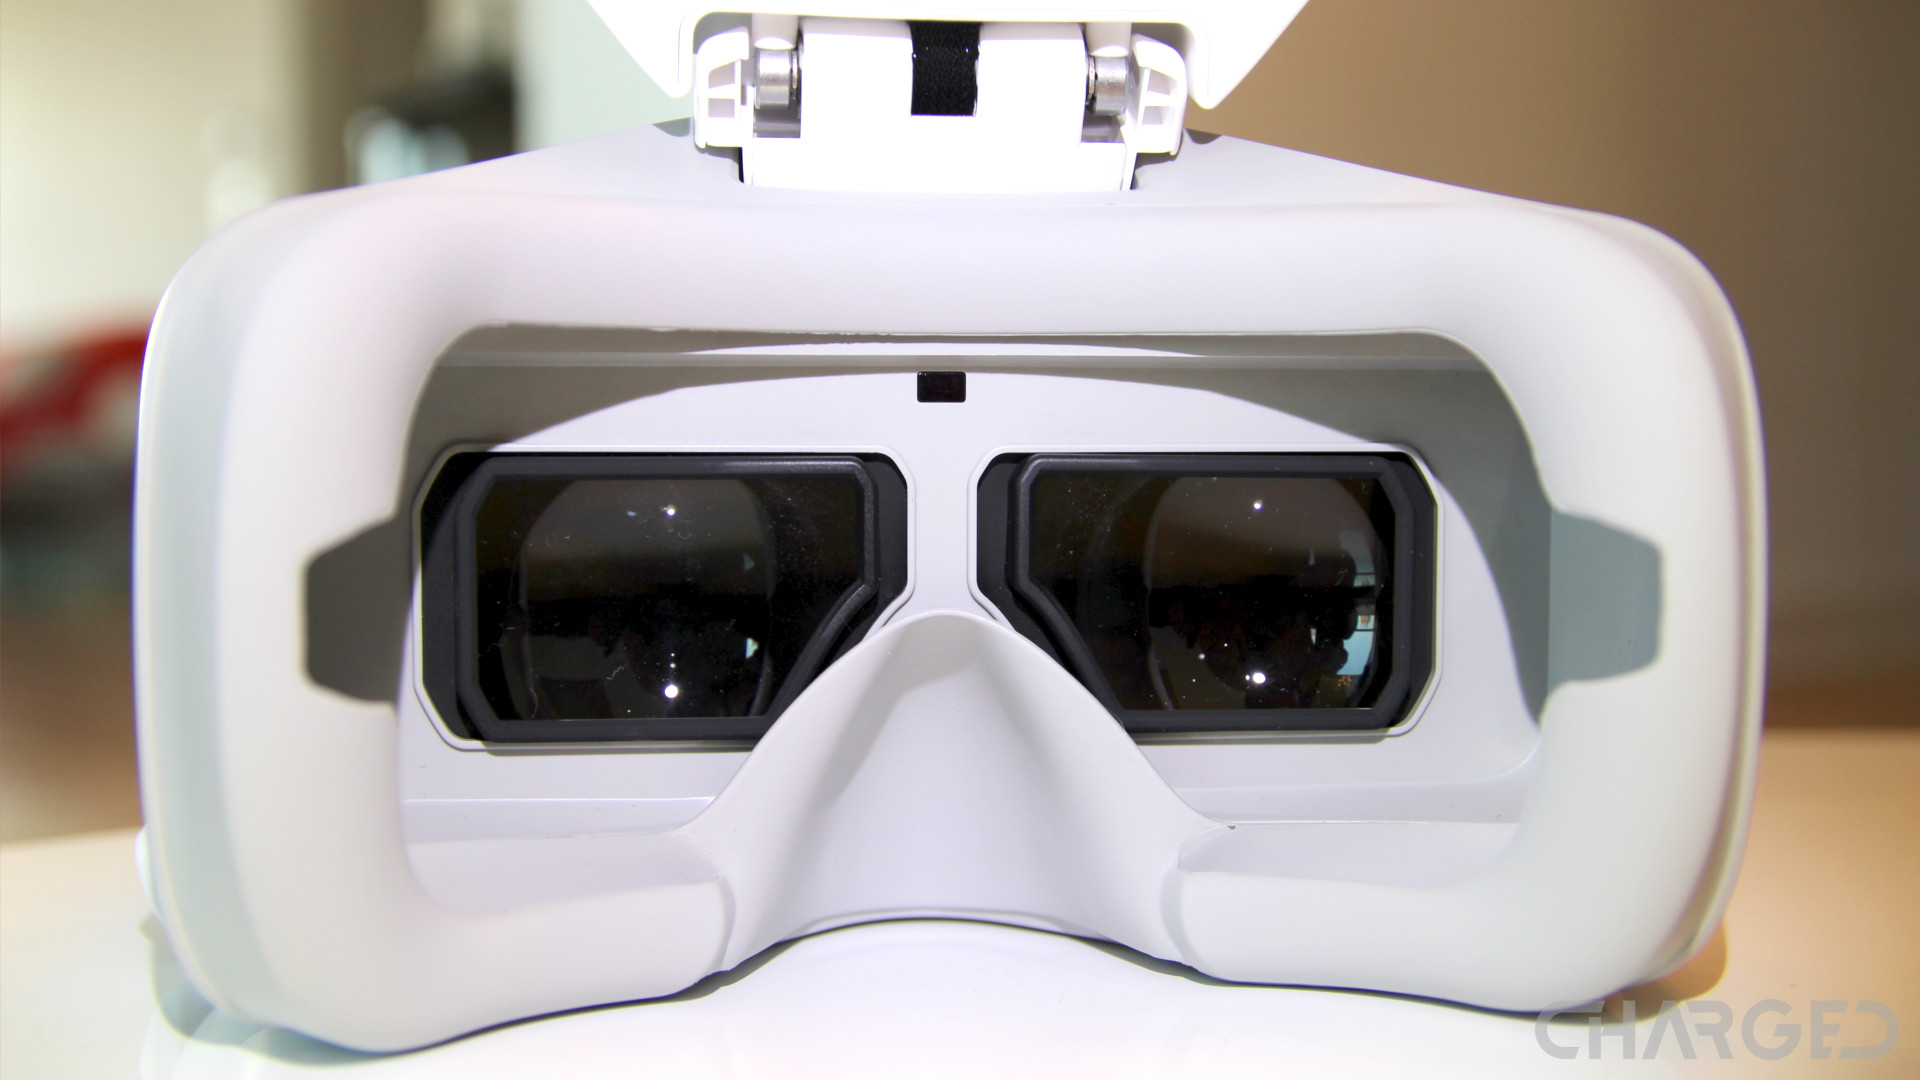 DJI Goggles and the Mavic Pro - a clever VR headset - Drone Rush